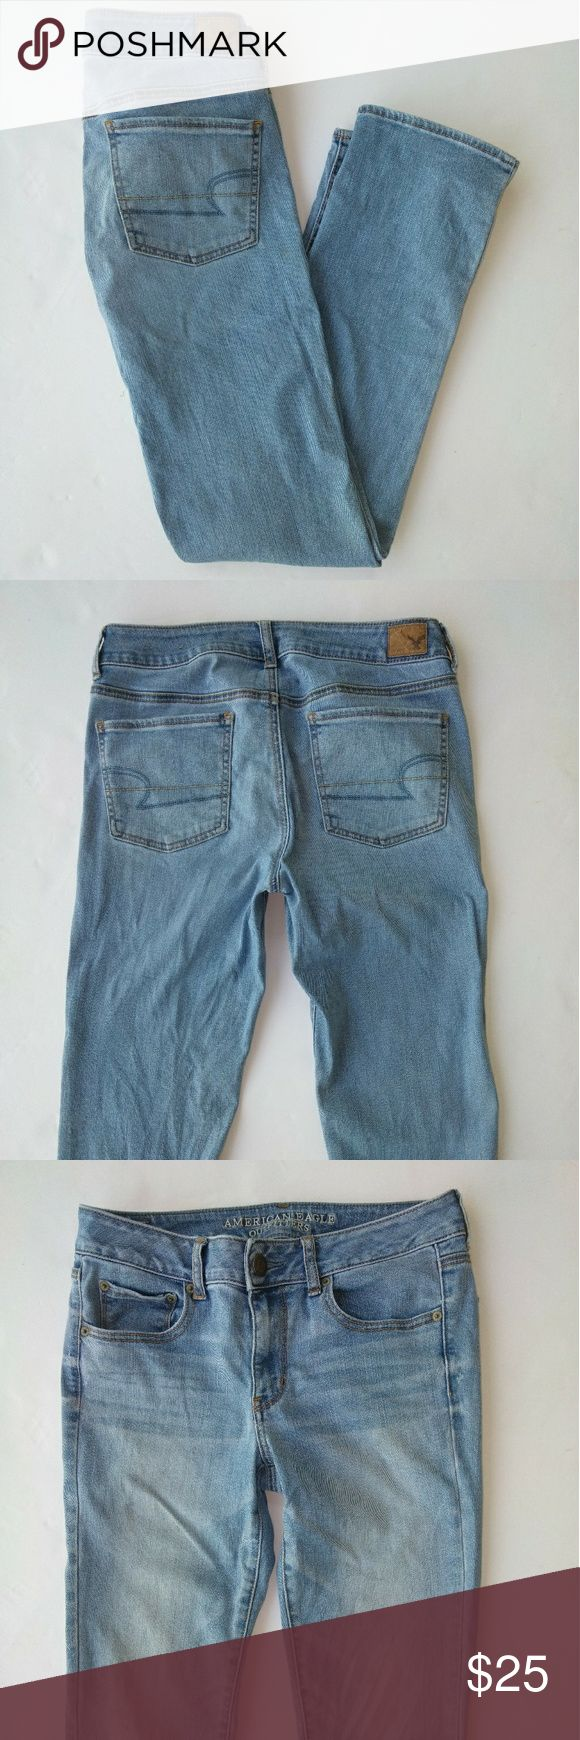 American Eagle Straight Super Stretch Jean size 10 AE straight super stretch jeans are a factory faded light wash. Denim feels nice and soft!  Size 10. Waist laying flat is 16''. Inseam is 31.5''. Front rise is 8.75''.  Accepting reasonable offers.  I ship same day (taking Post Office hours into consideration).  Item # 477 (for my reference). American Eagle Outfitters Jeans Straight Leg